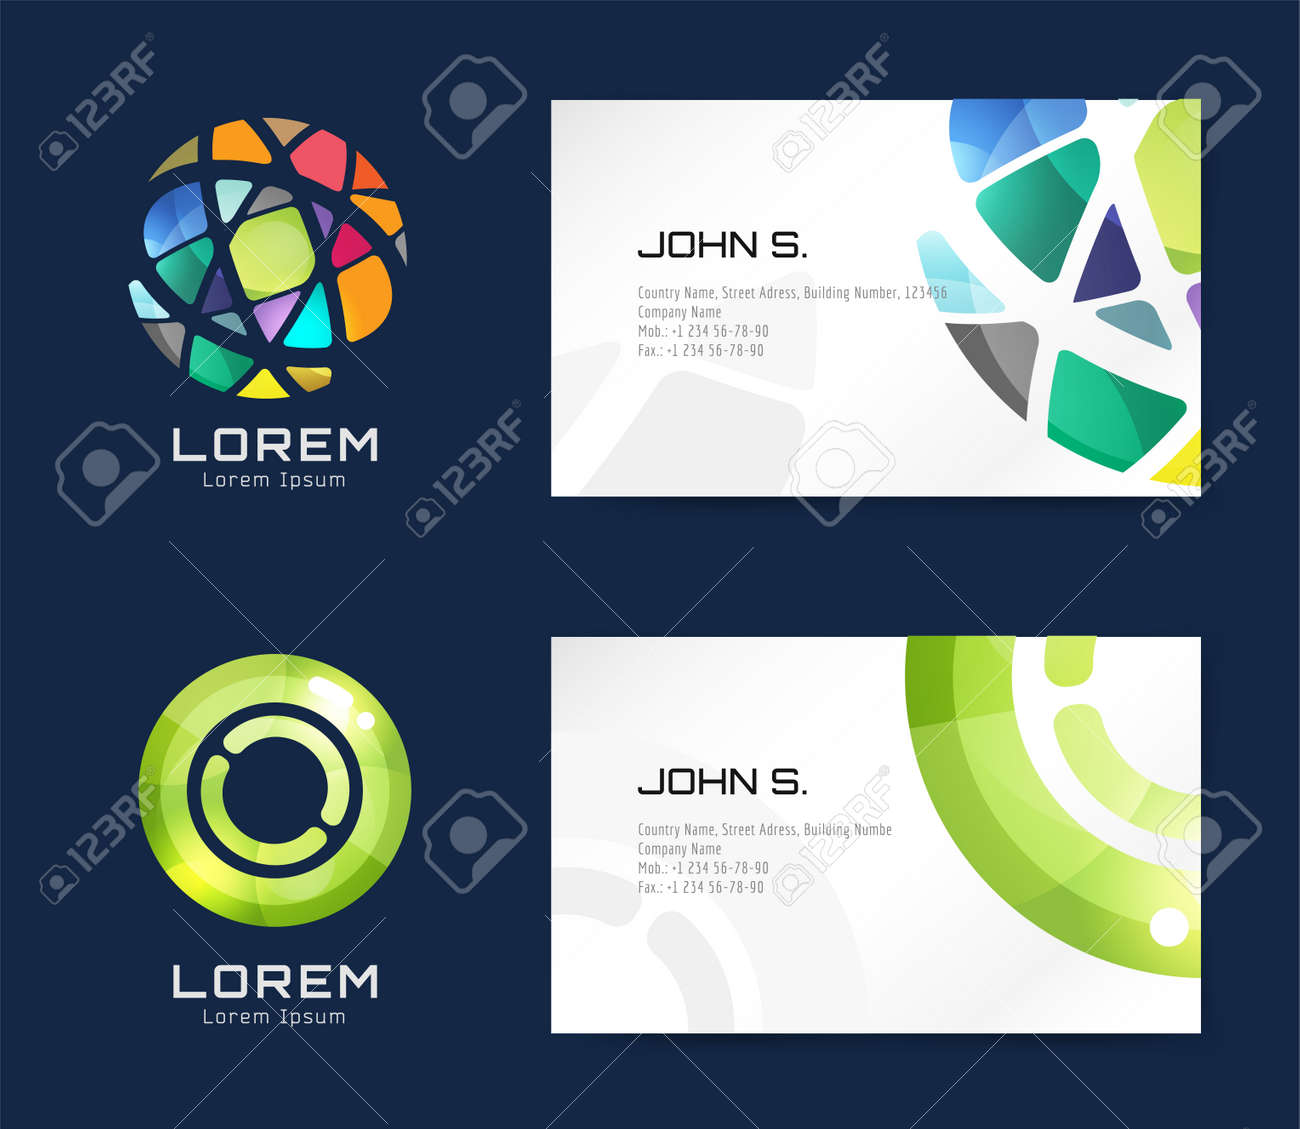 Vector globe logo business card template abstract arrow design vector vector globe logo business card template abstract arrow design and creative identity idea blank paper stock illustration reheart Gallery